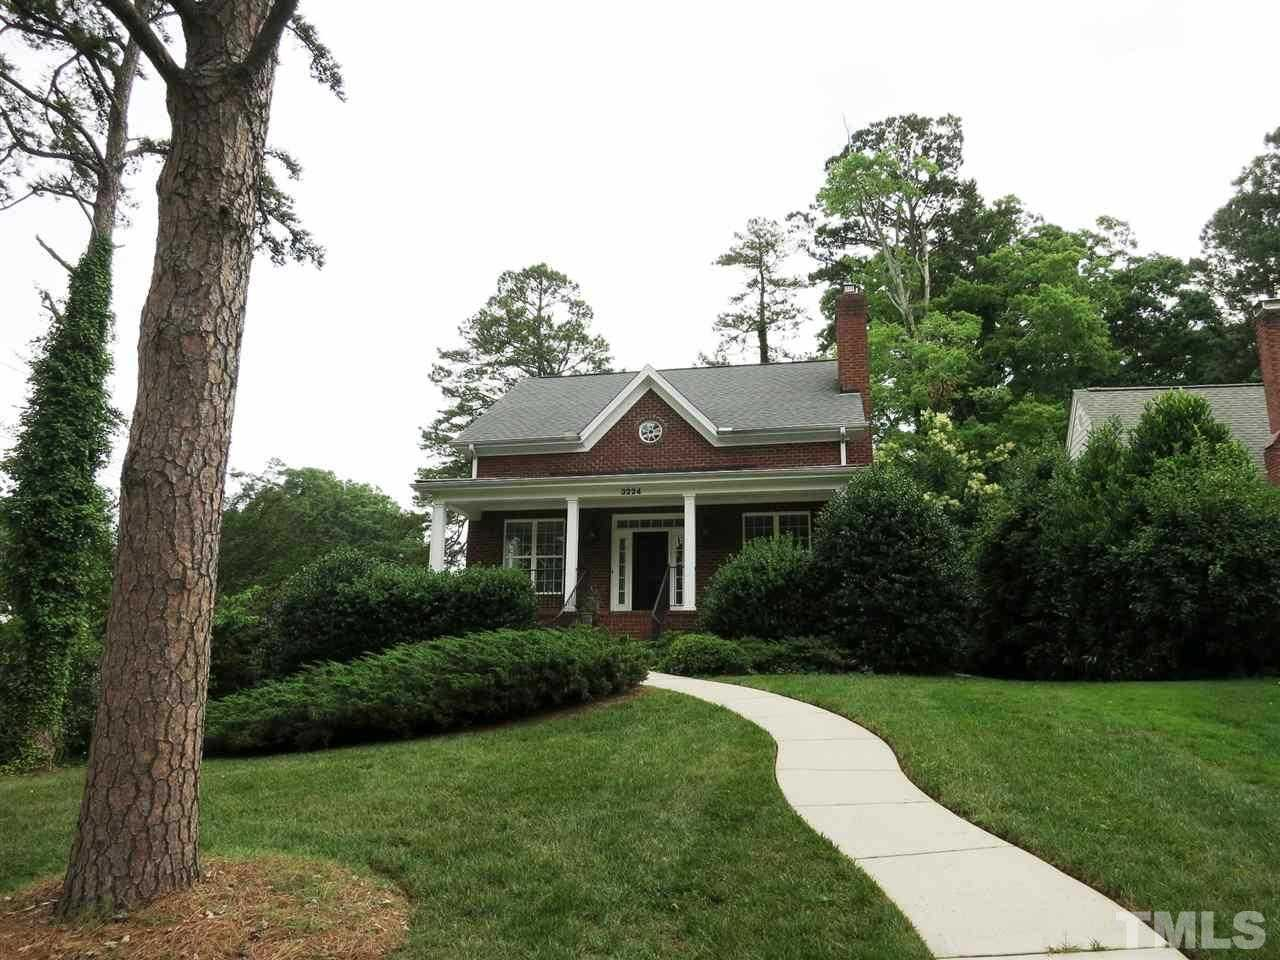 $675,000 - 4Br/4Ba -  for Sale in Wilmont, Raleigh